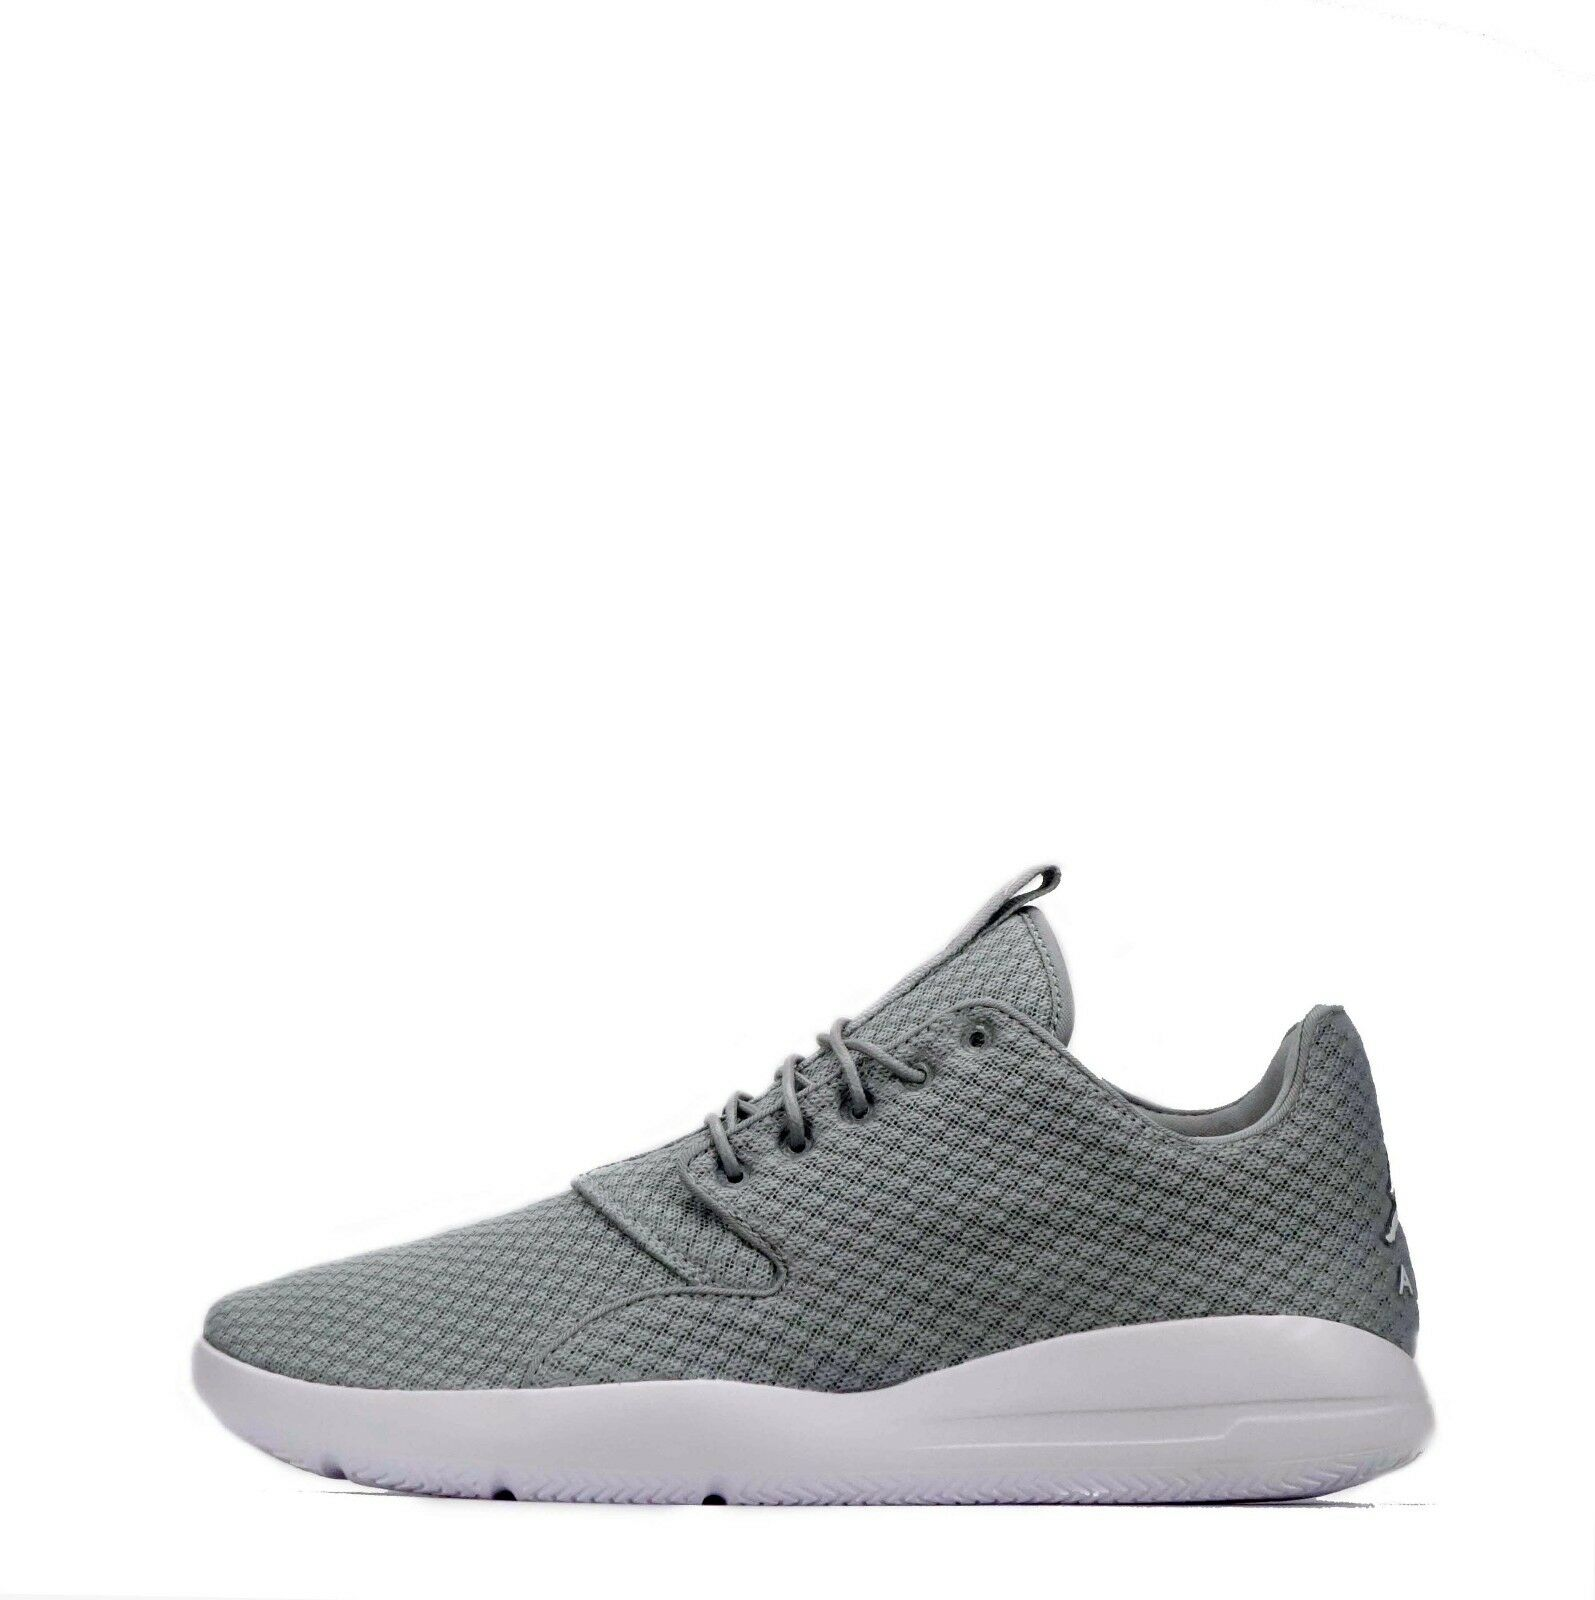 Nike Jordan Eclipse Men's Shoes Wolf Grey/White